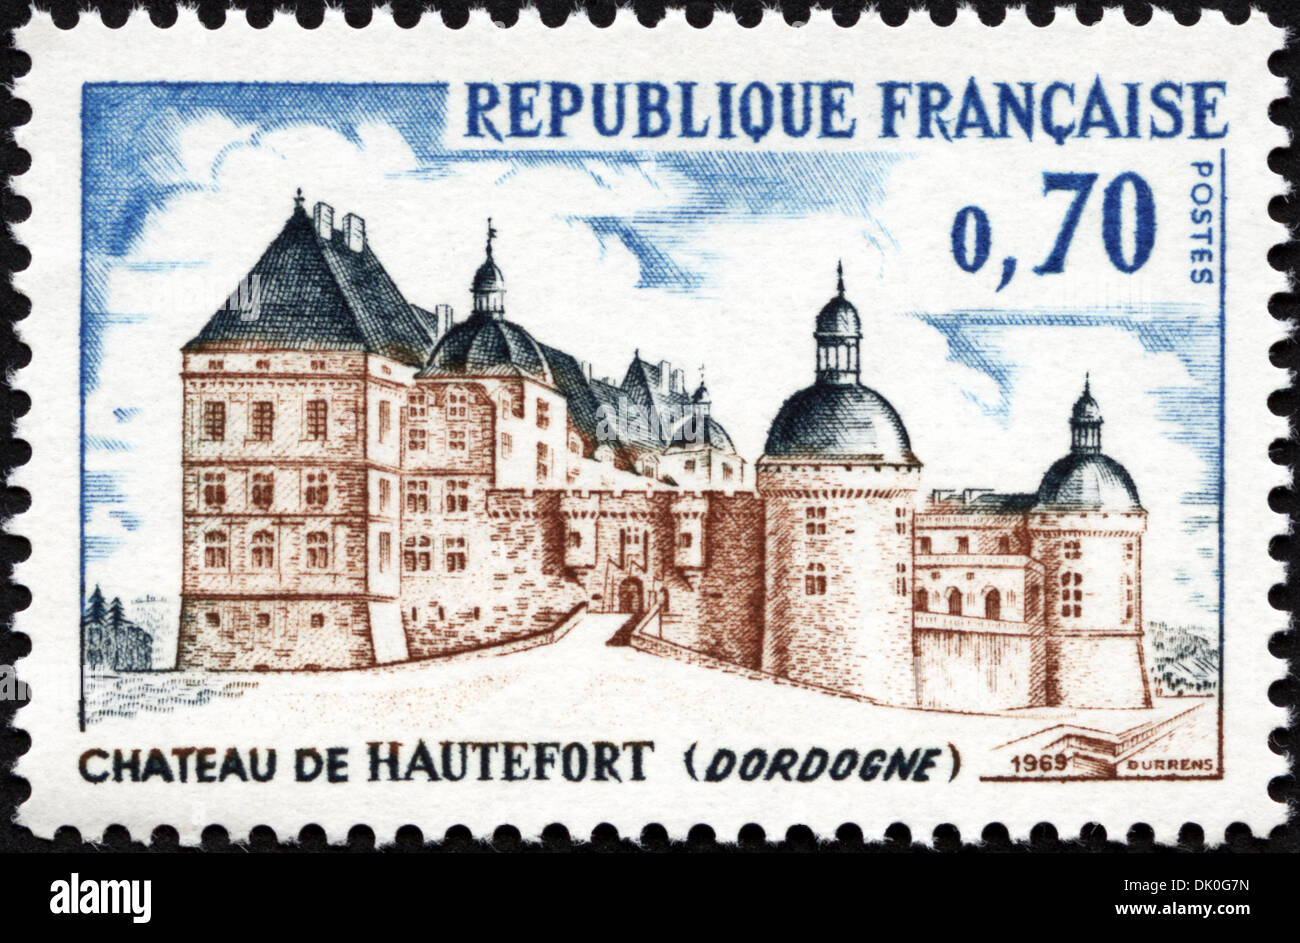 postage stamp French Republic 0,70 featuring Chateau De Hautefort ( Dordogne ) issued 1969 - Stock Image